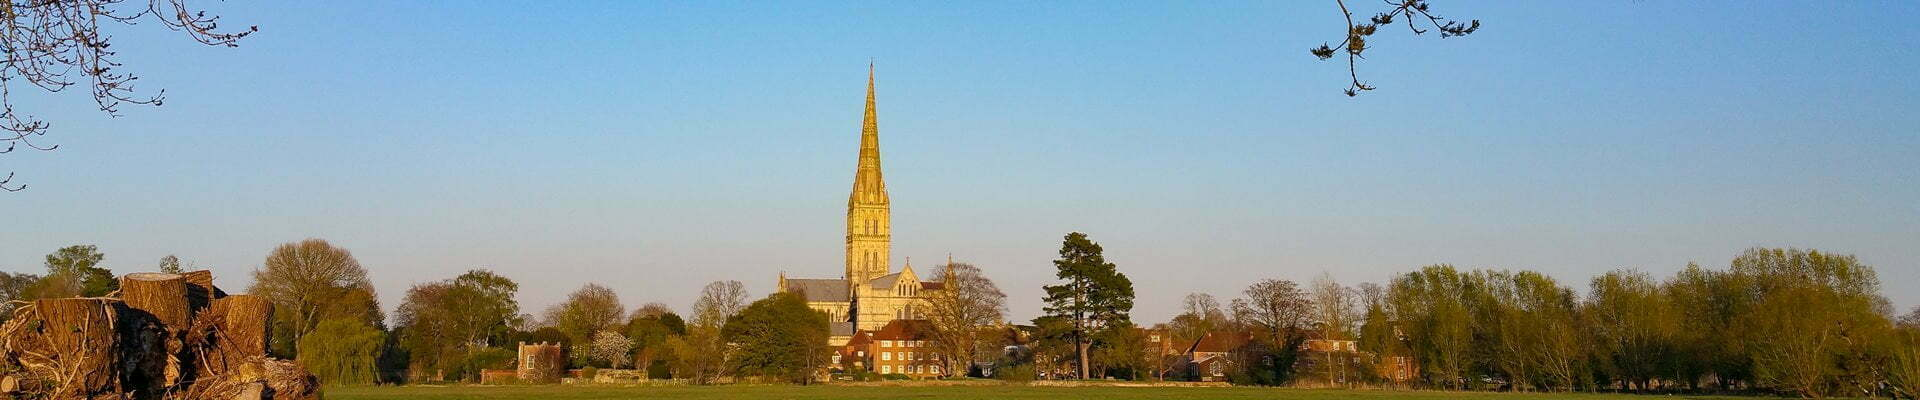 View of Salisbury Cathedral from the meadows in early spring.